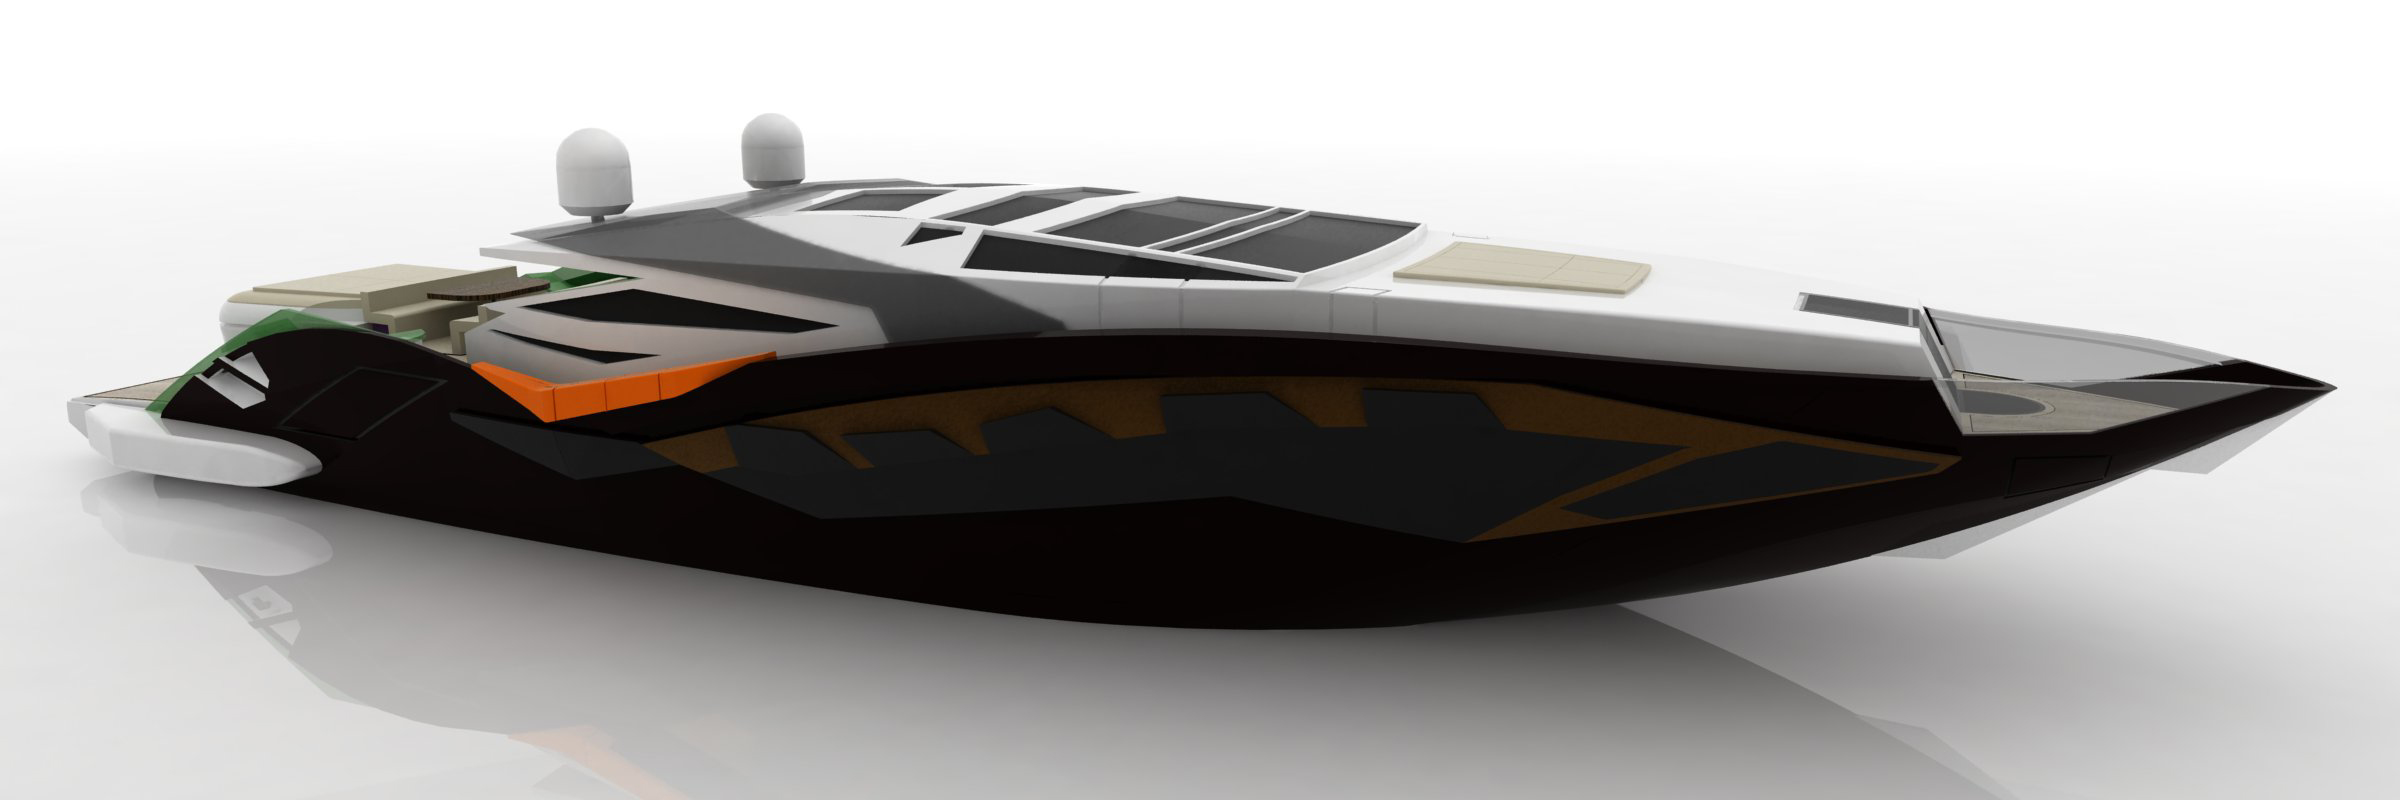 4m Boat Plans Must See Favorite Plans